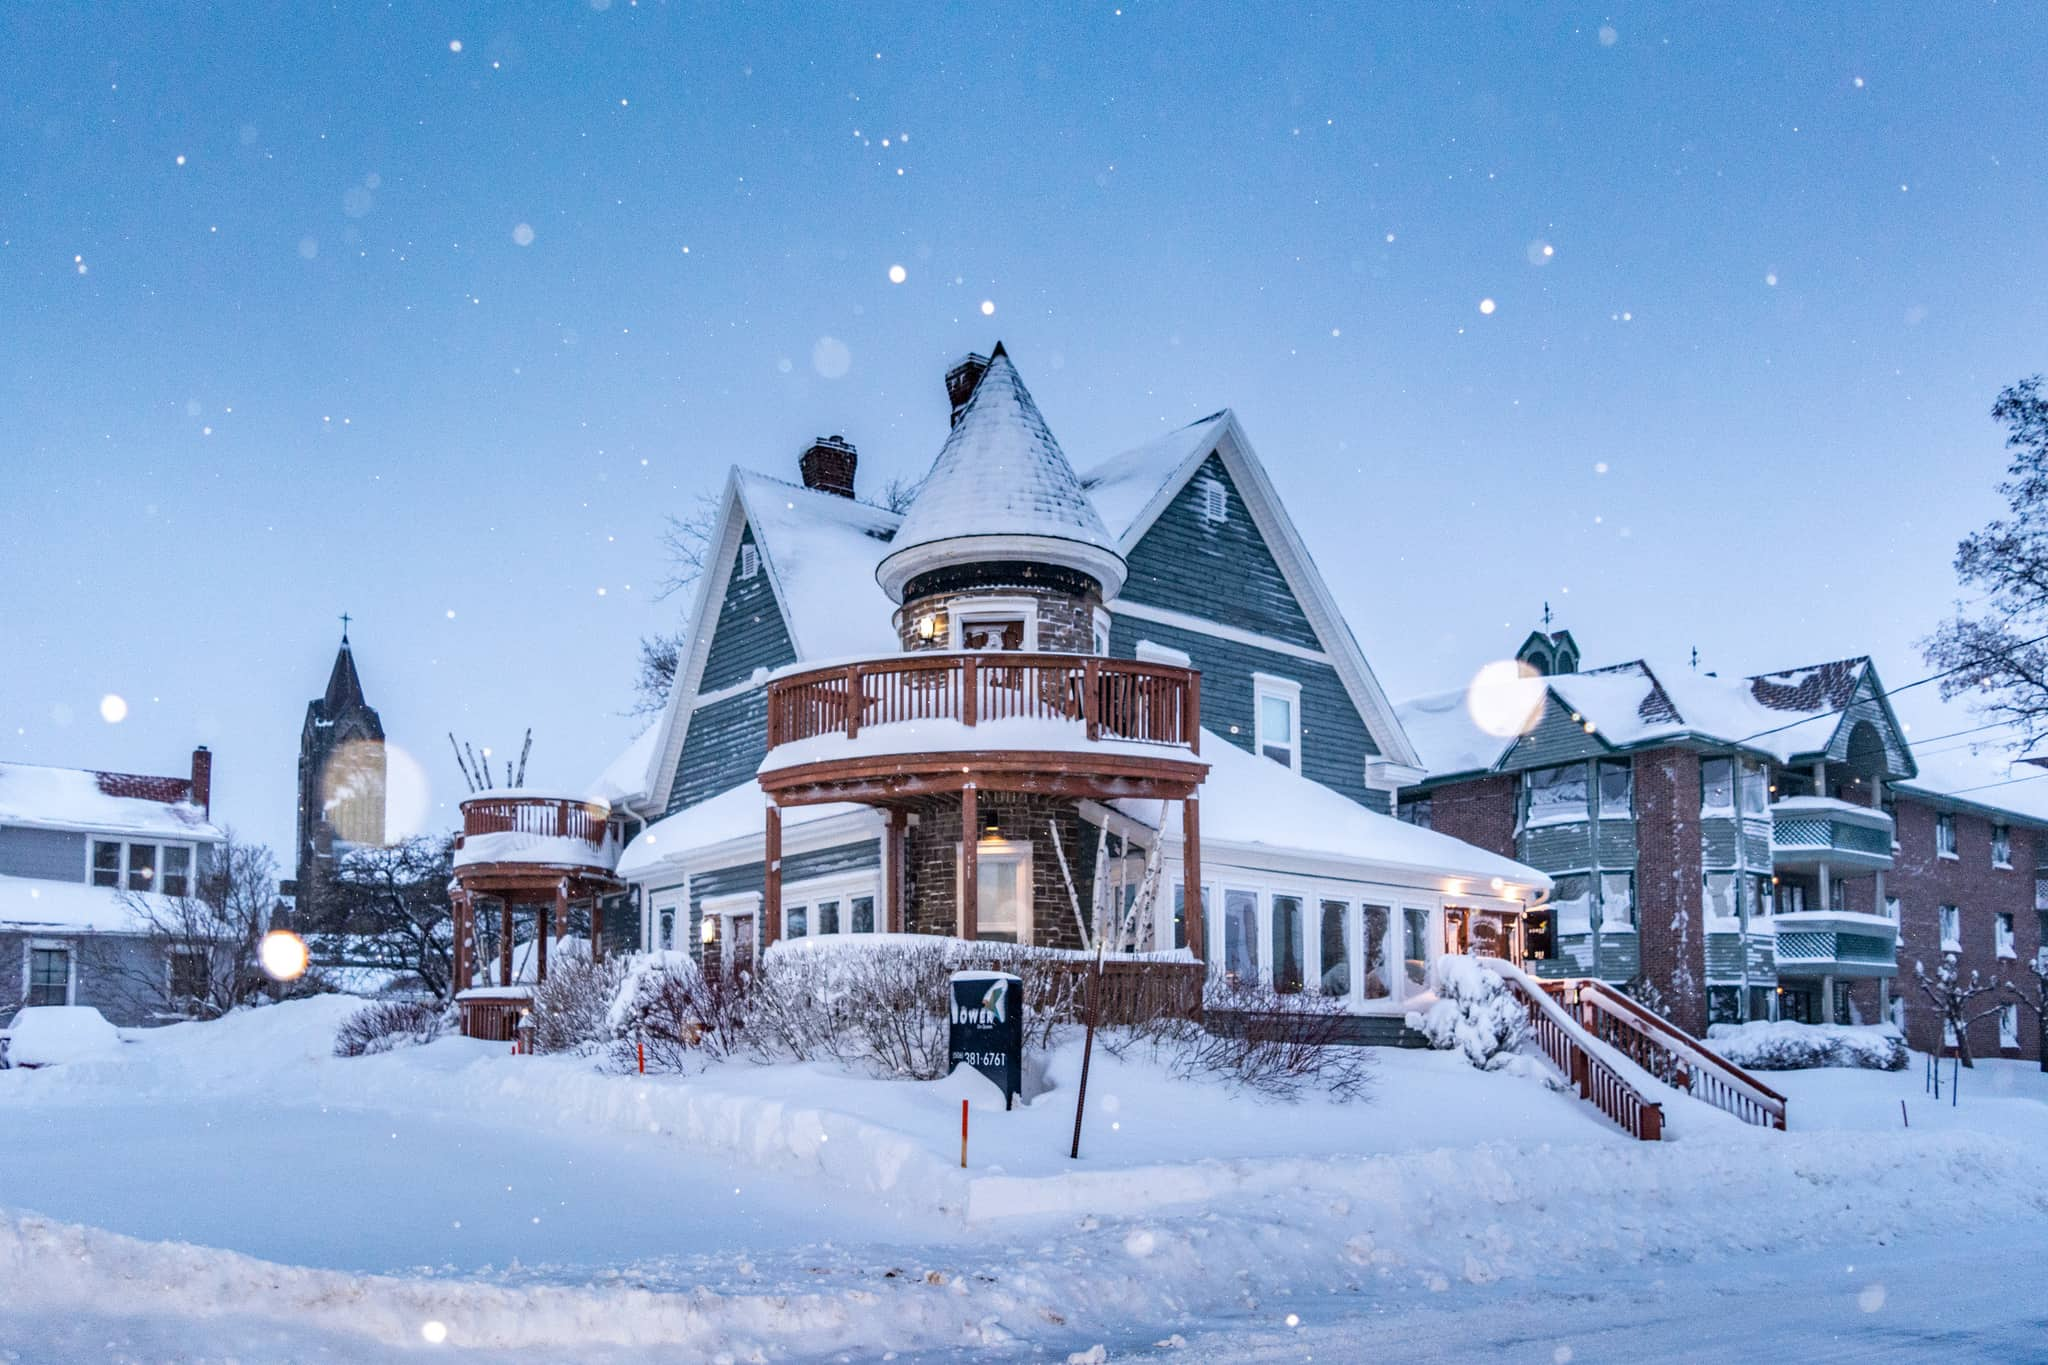 A snow-covered house in Moncton, NB, which is among Canada's snowiest places